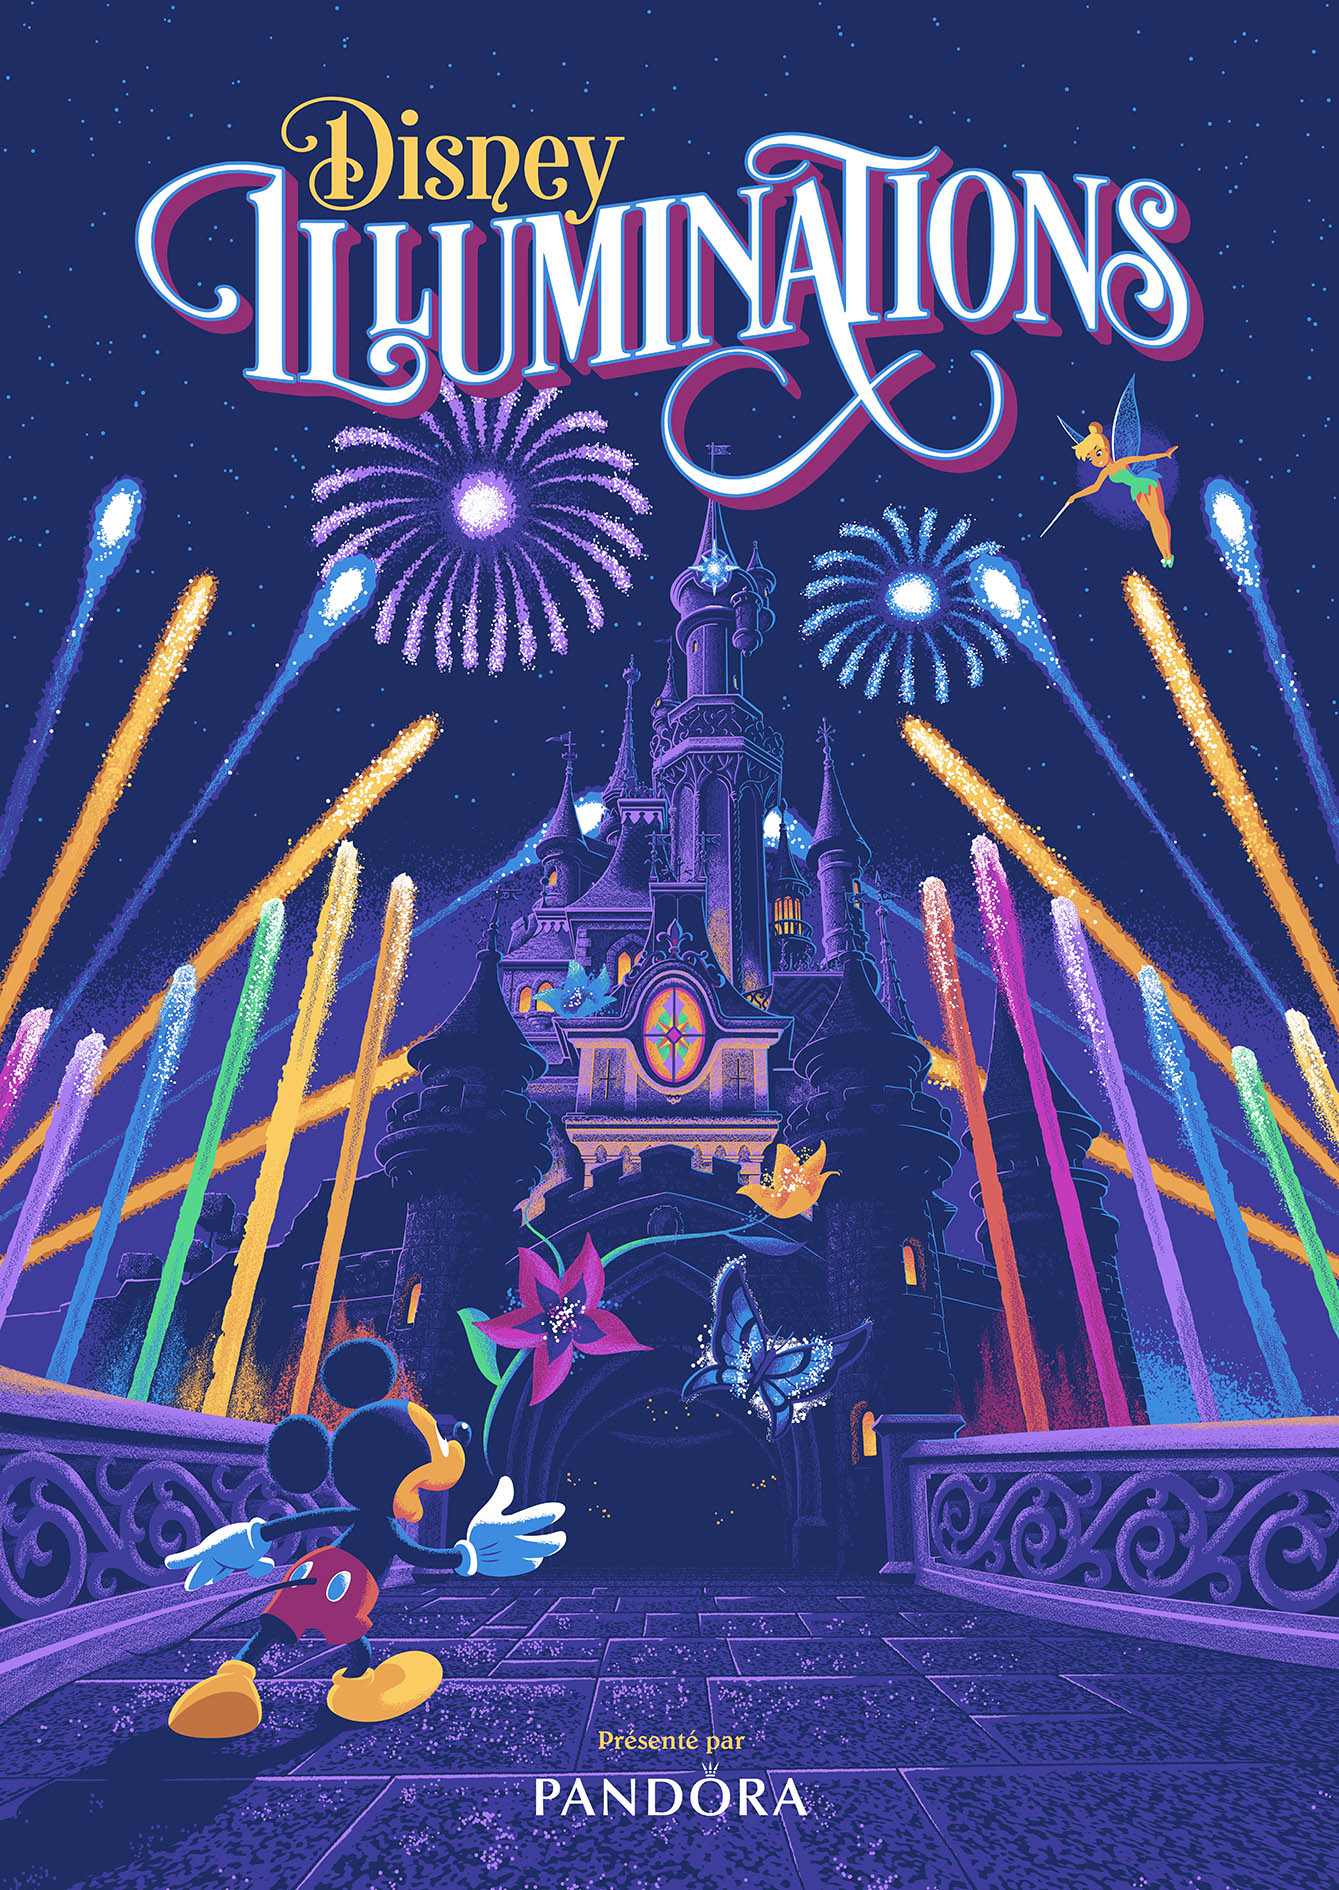 Disney Illuminations poster at Disneyland Paris